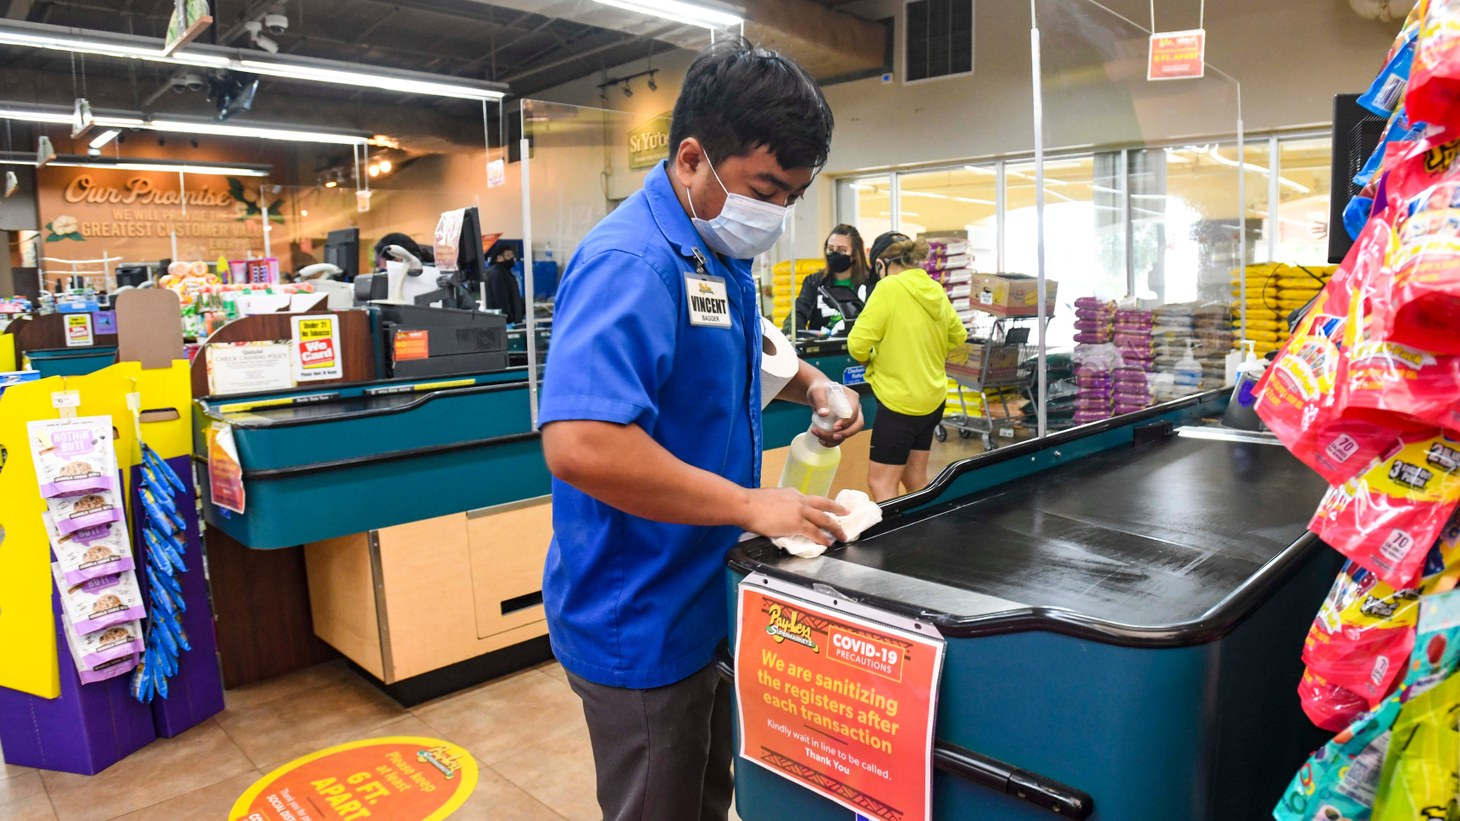 Workers sanitize conveyor belts after every single transaction to maintain cleanliness for shoppers at the Pay-Less Supermarket store in Dededo. Aug. 19, 2020.